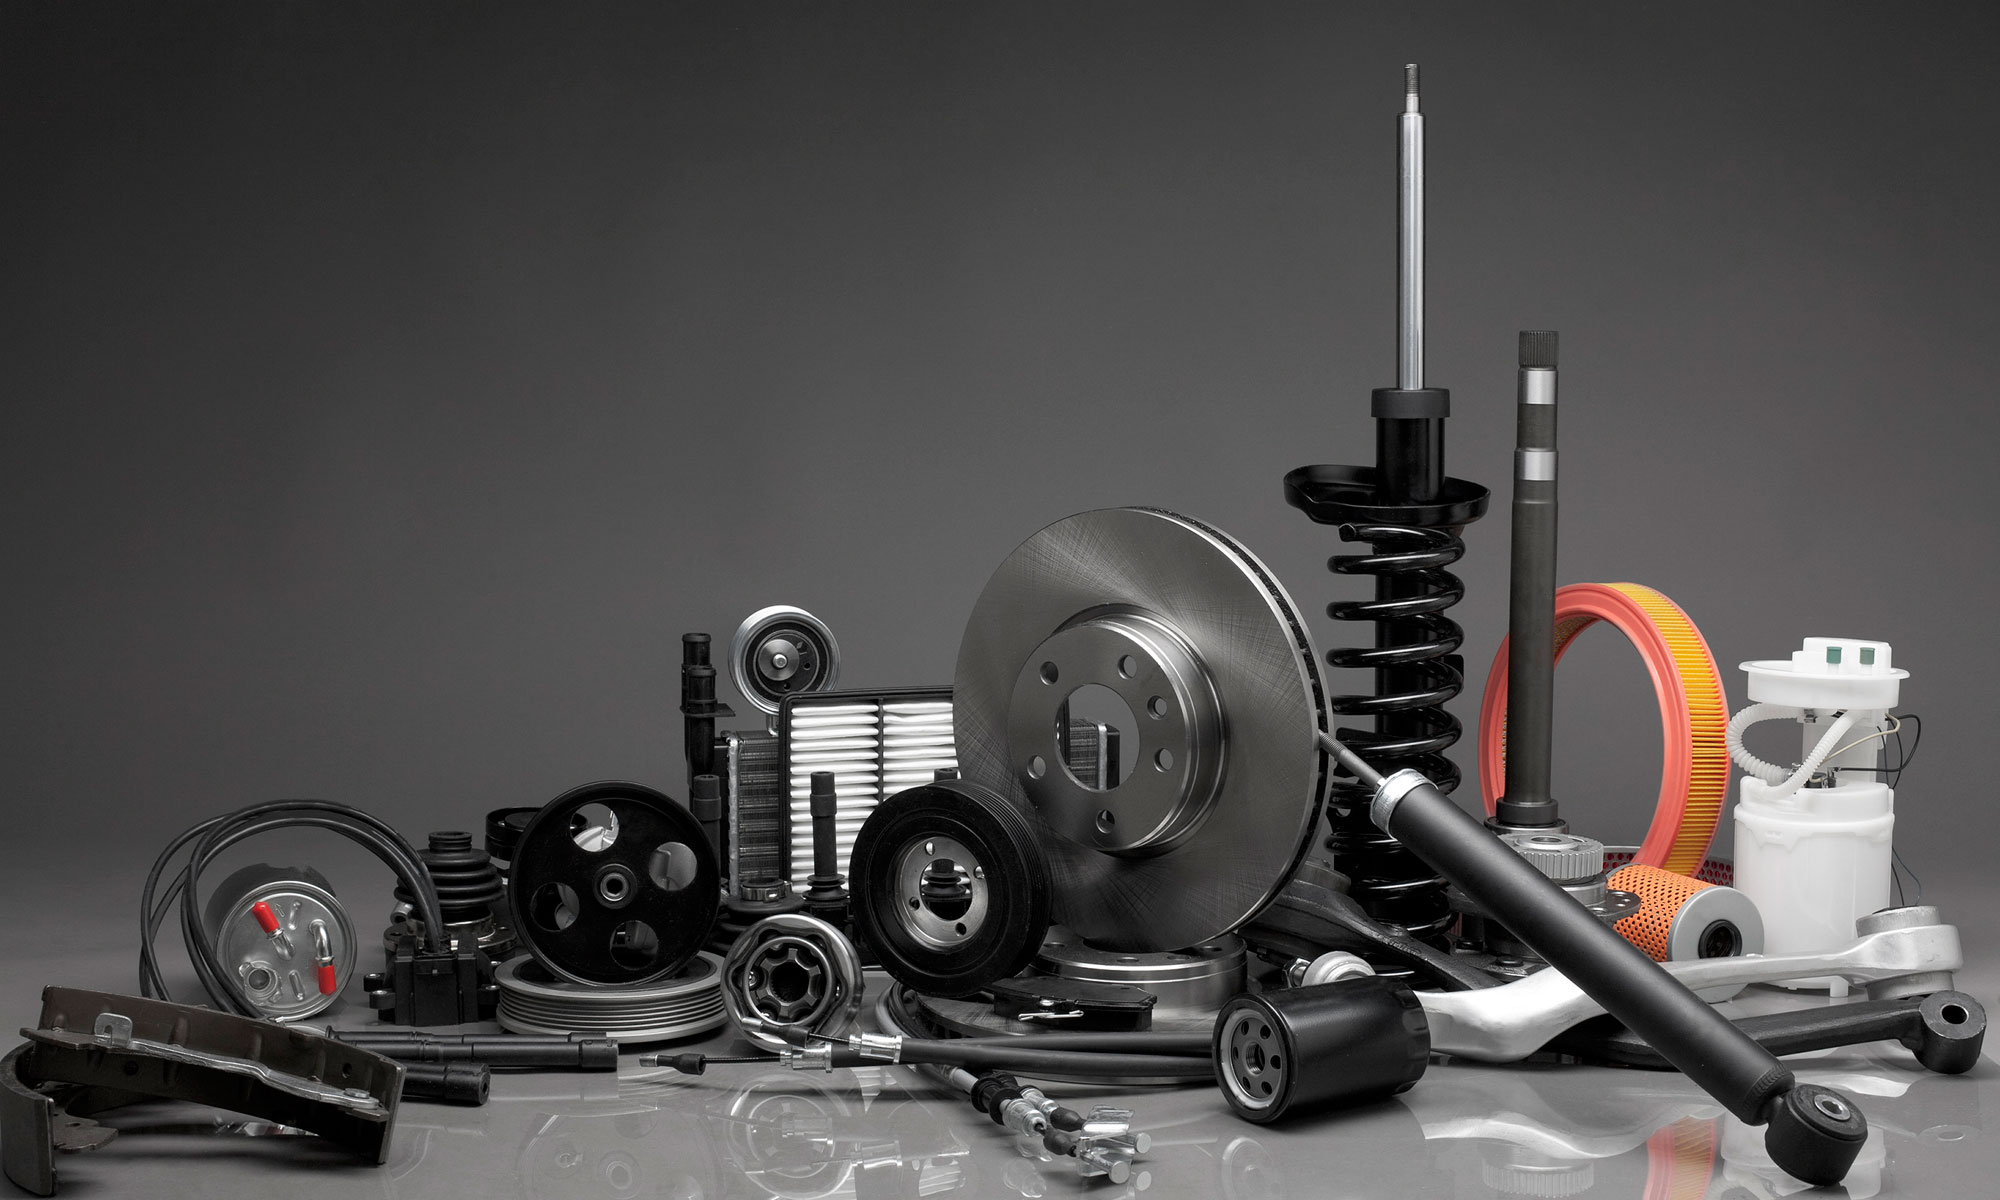 Automotive parts sales, central support for parts marketing to independent garages.